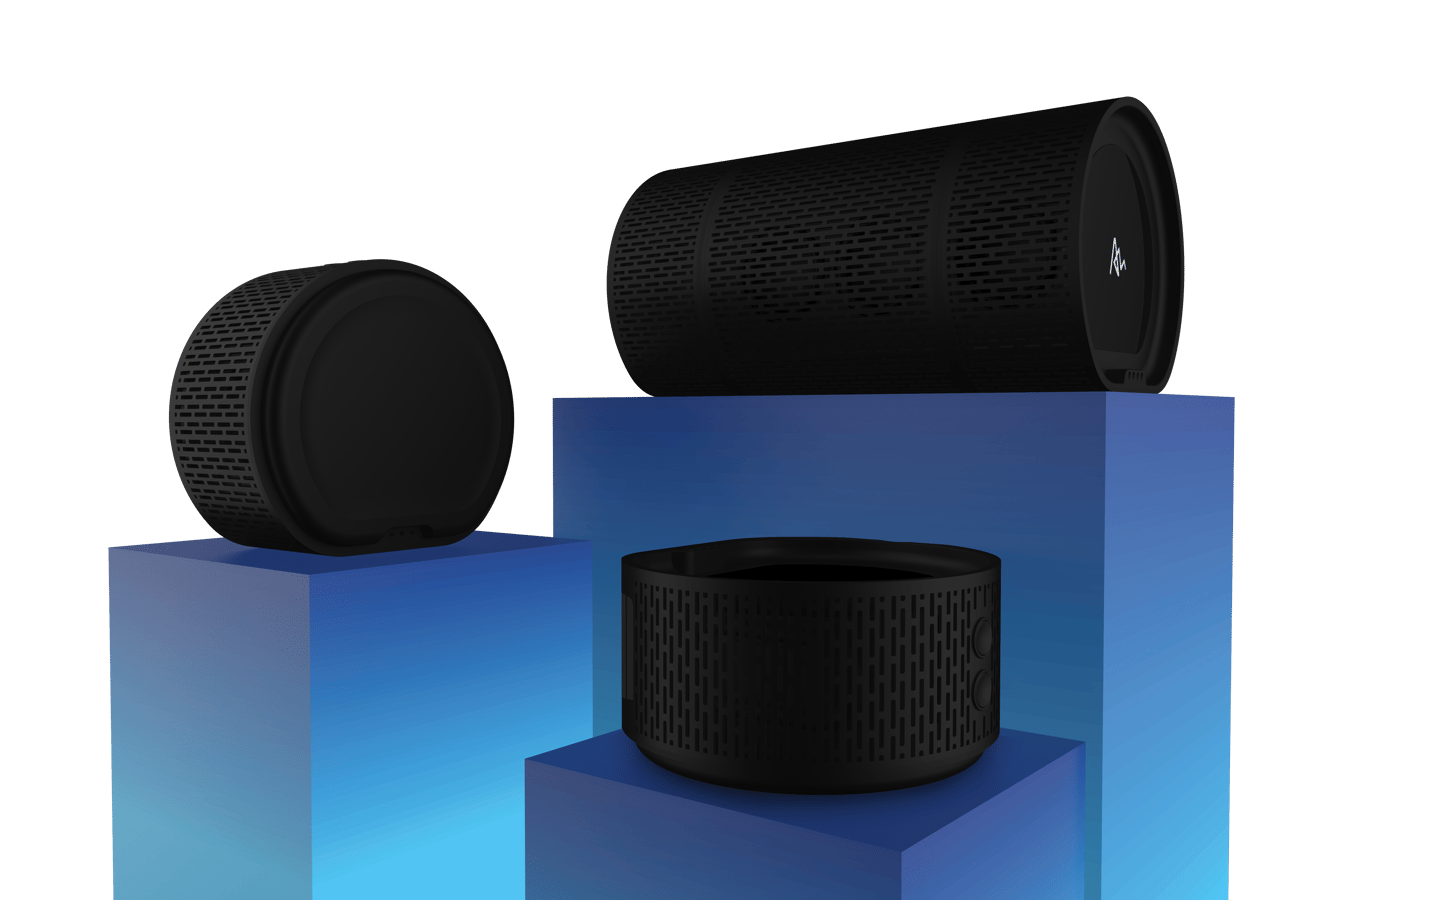 The AirBase and four AirConnect speakers can be used as one 24-W Bluetooth speaker, or independently for surround sound or multi-room setups